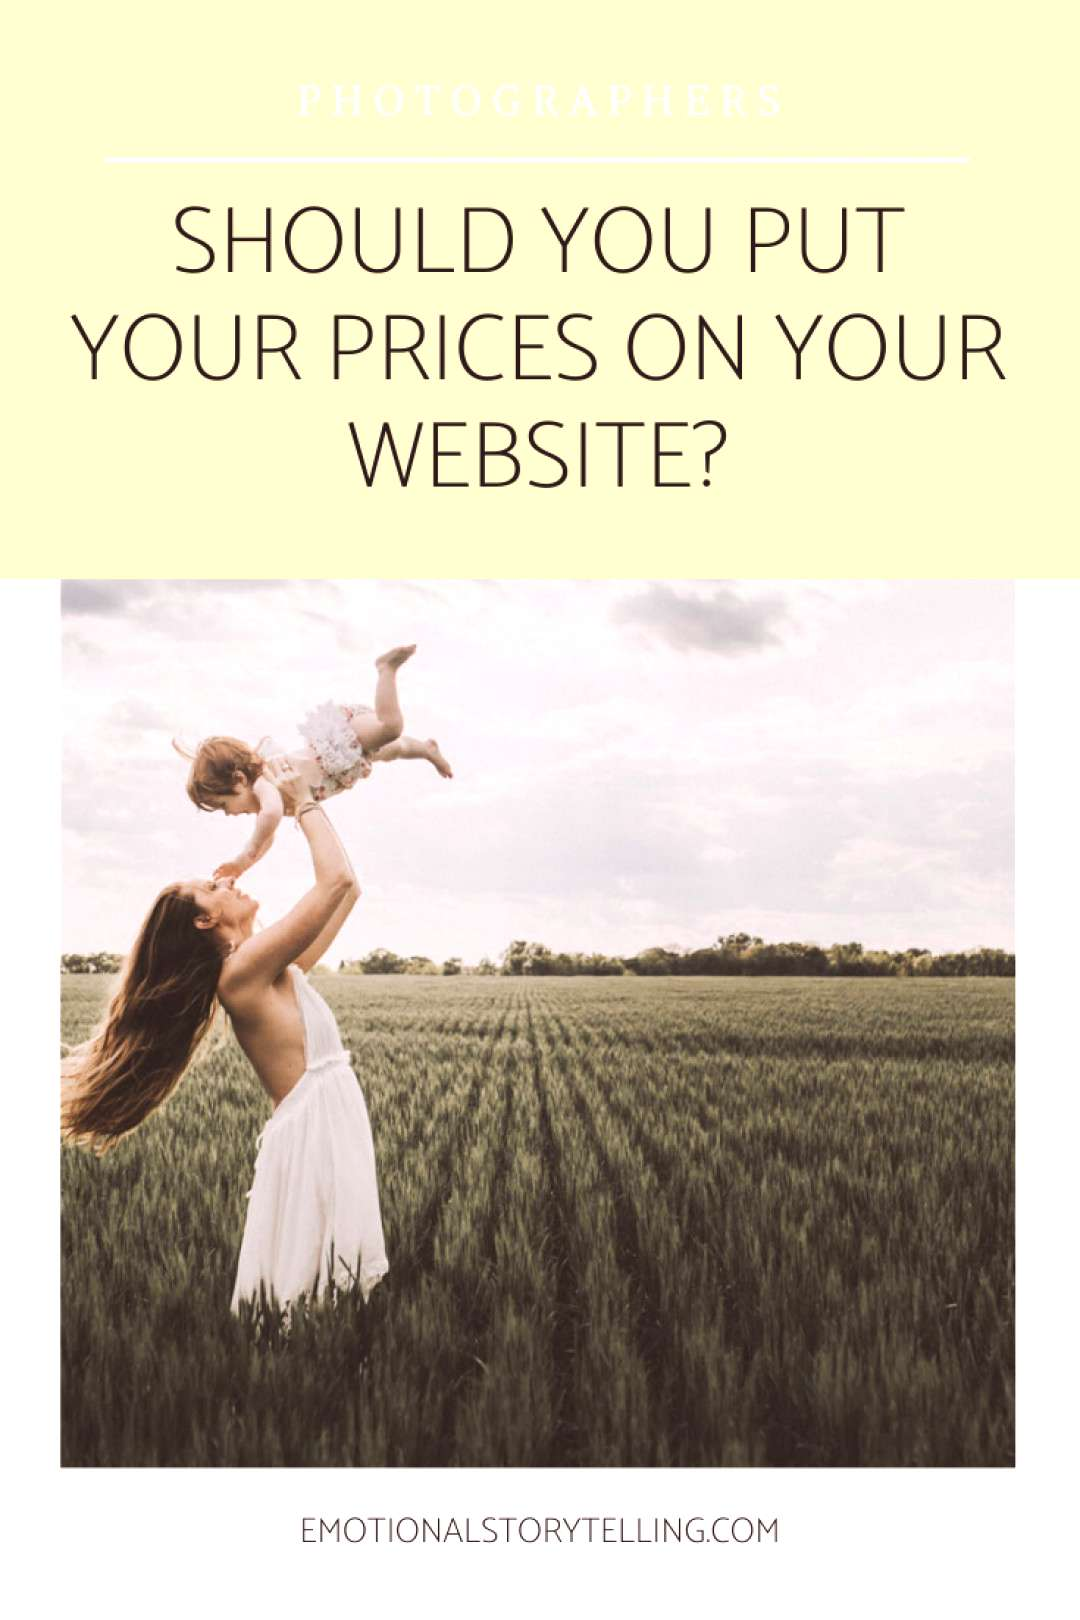 Should you put your prices on your Website?